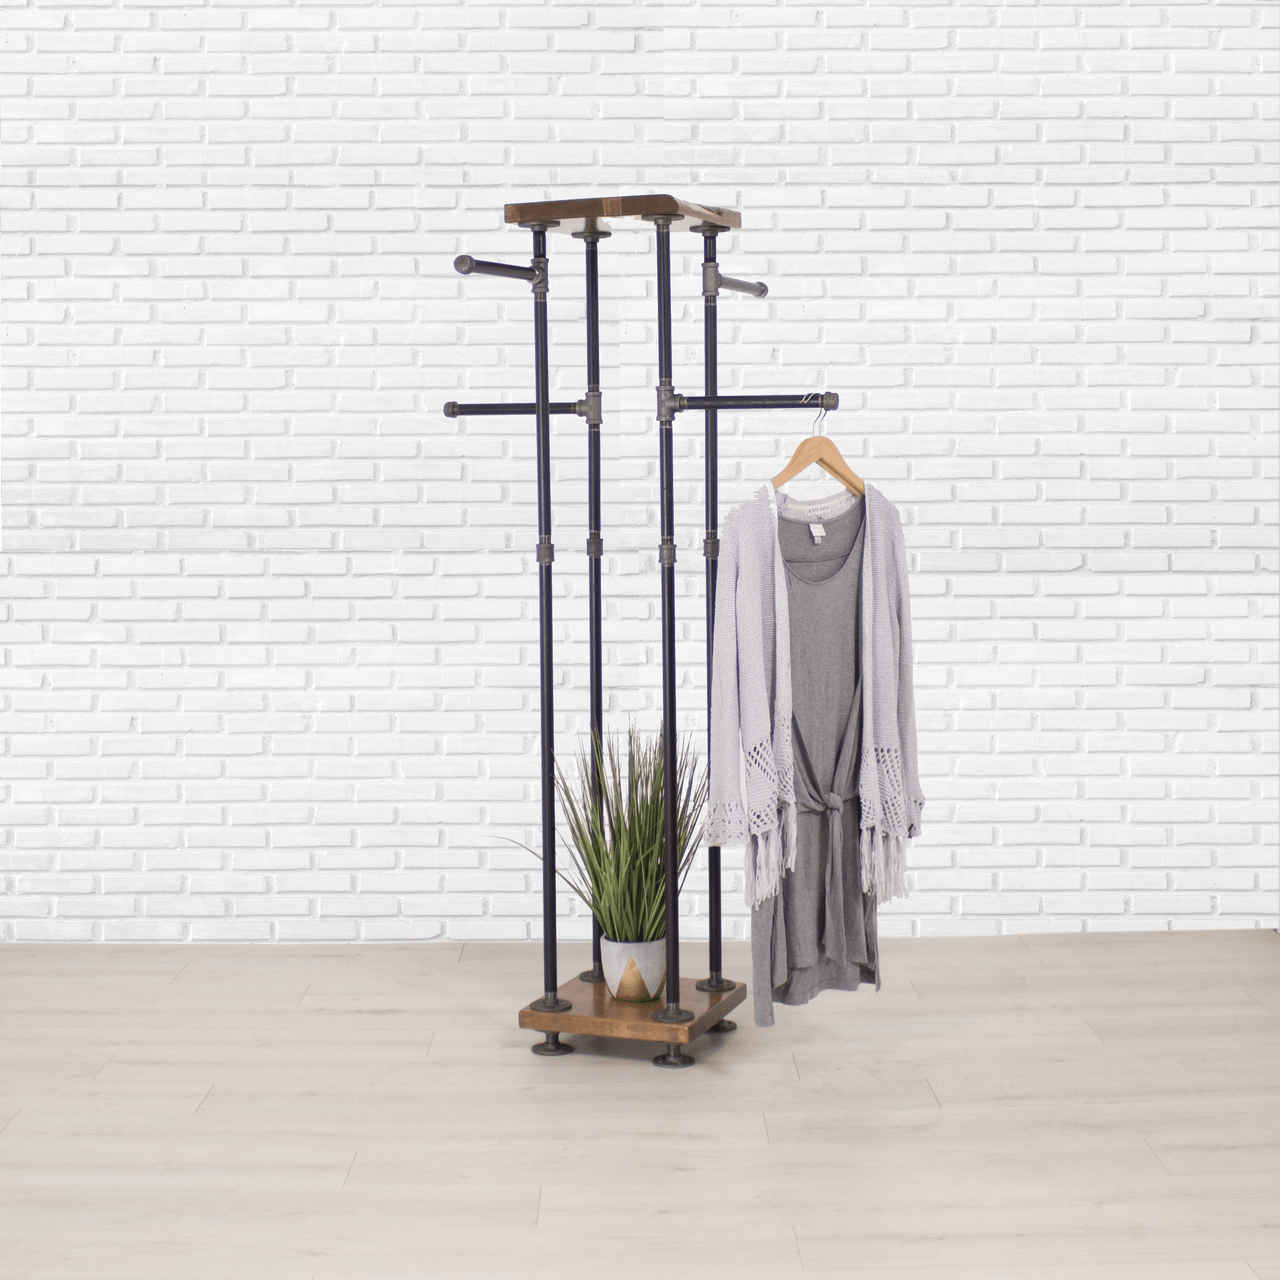 industrial pipe and wood clothes rack 4 way garment rack clothing rack closet organizer clothing storage and display